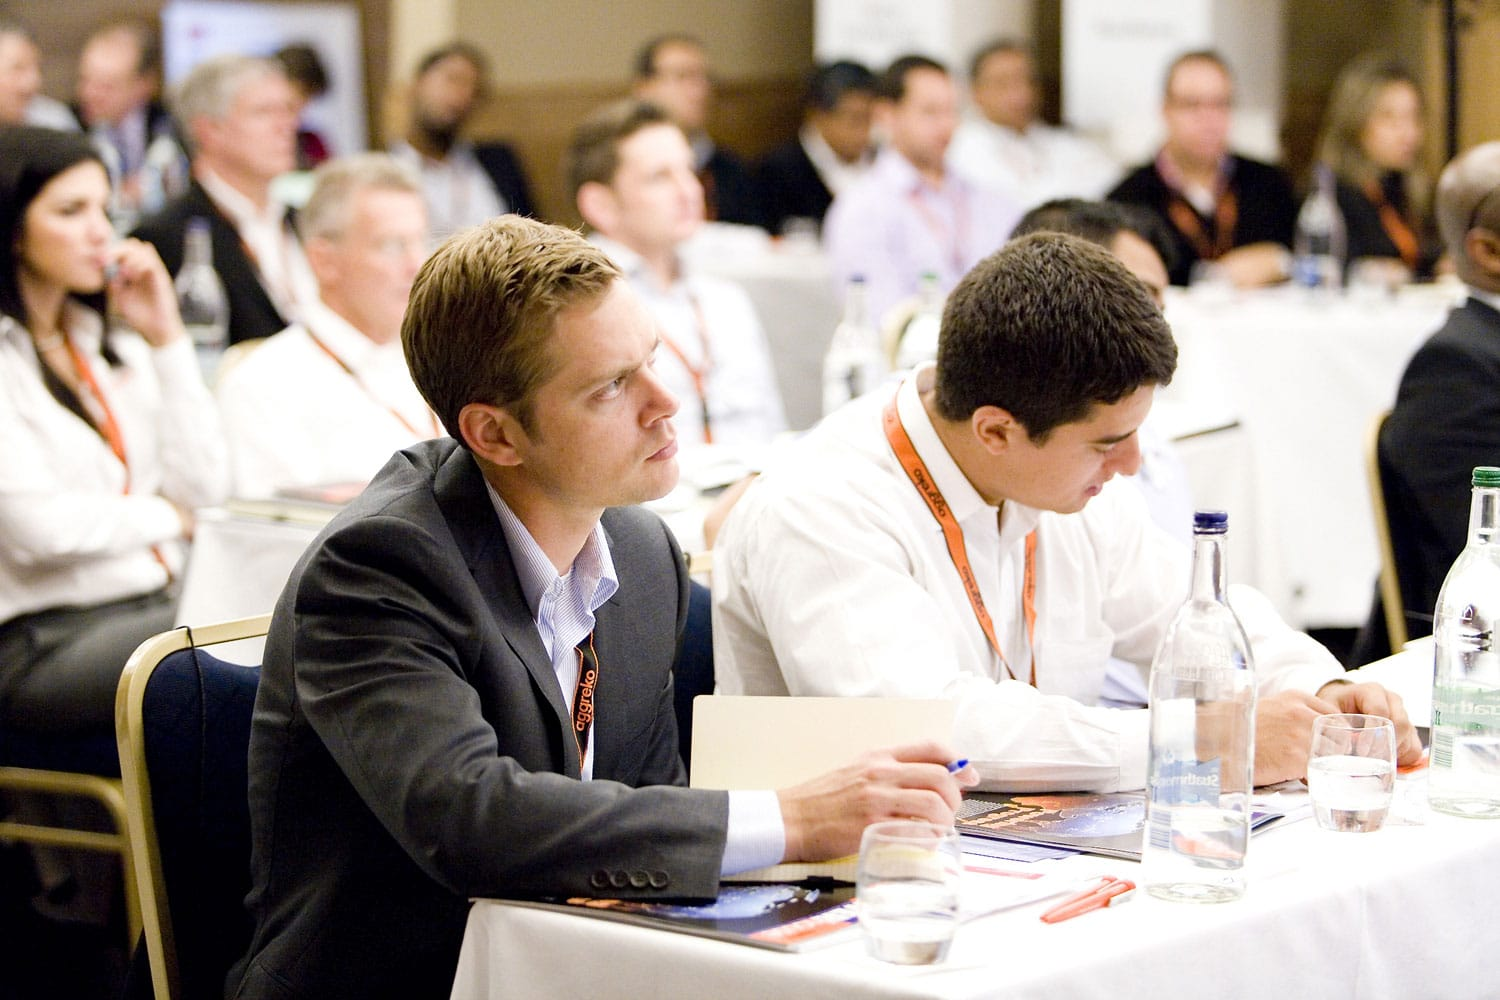 The Inn on Loch Lomond conferences and meetings